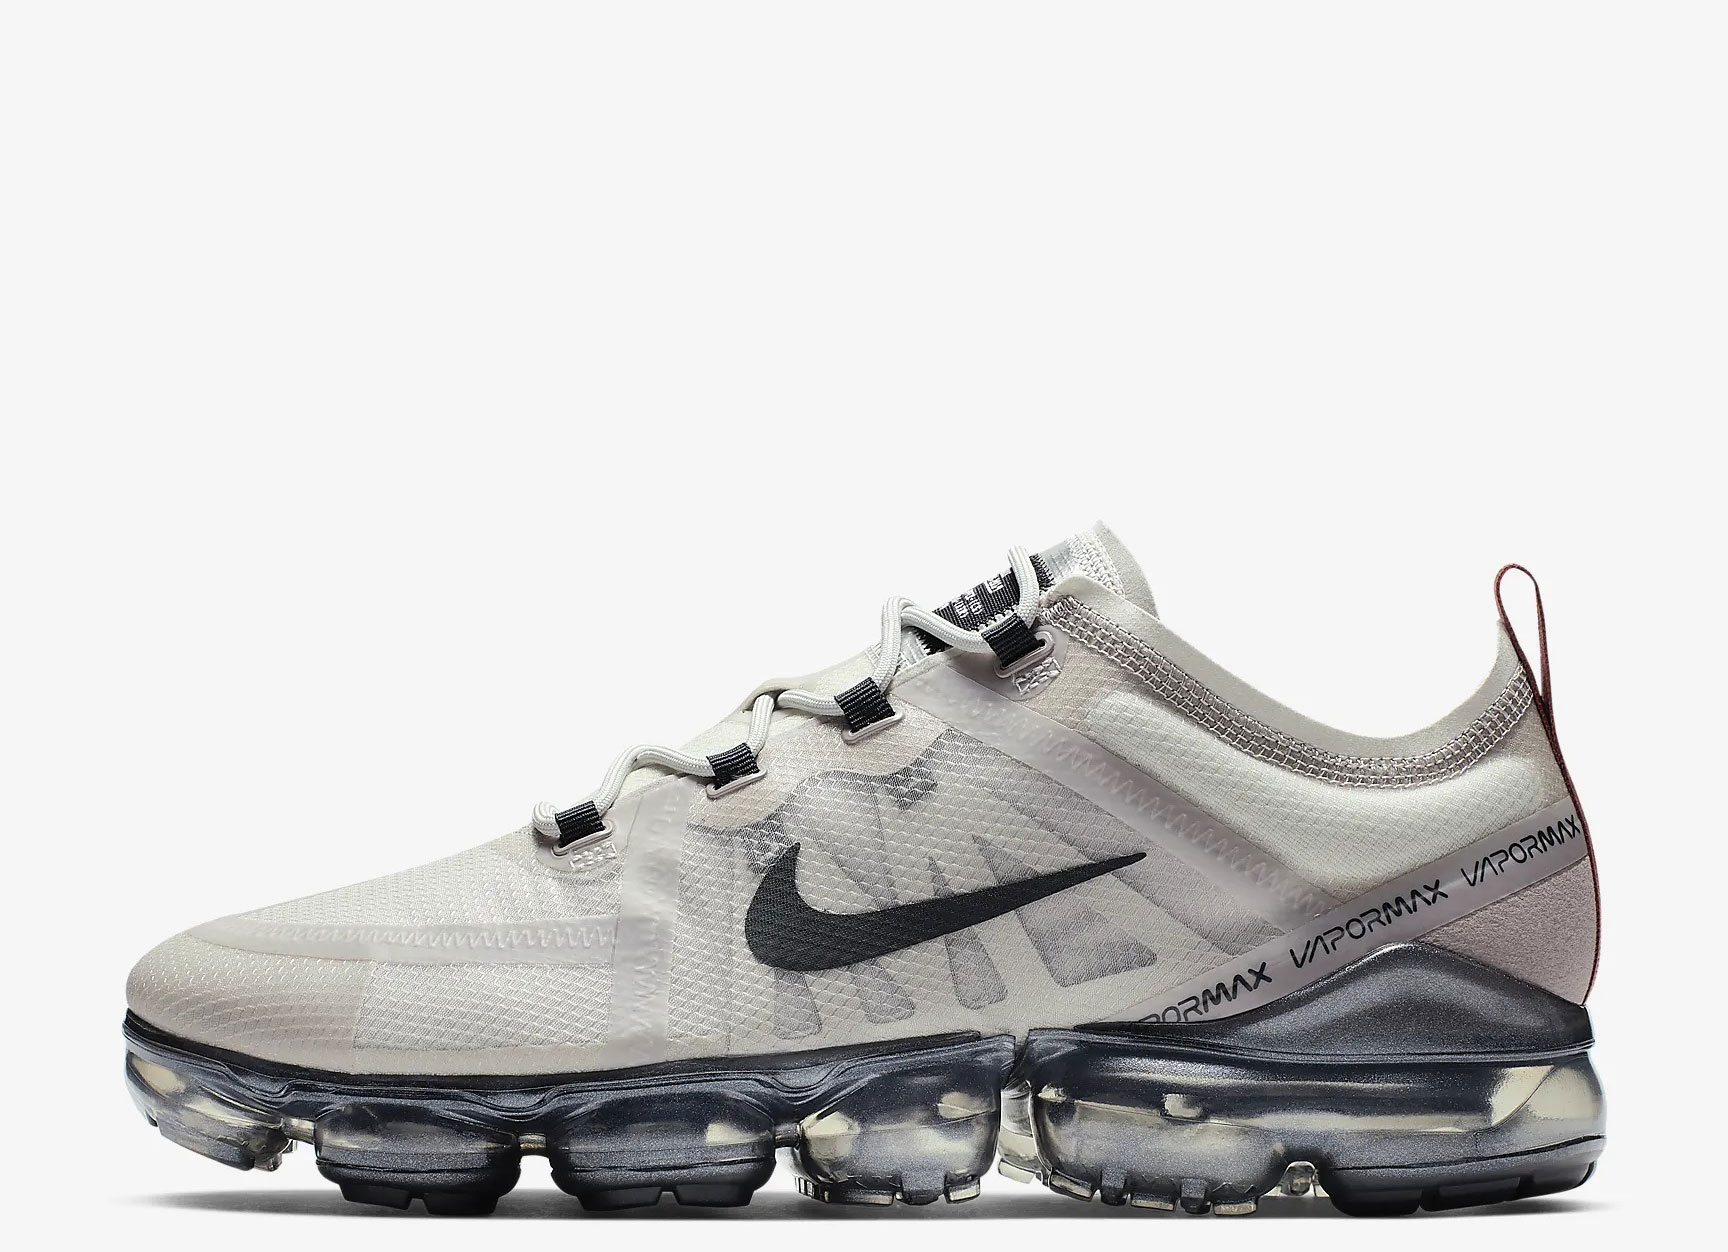 Nike Air Vapormax 2019 heren sneaker wit